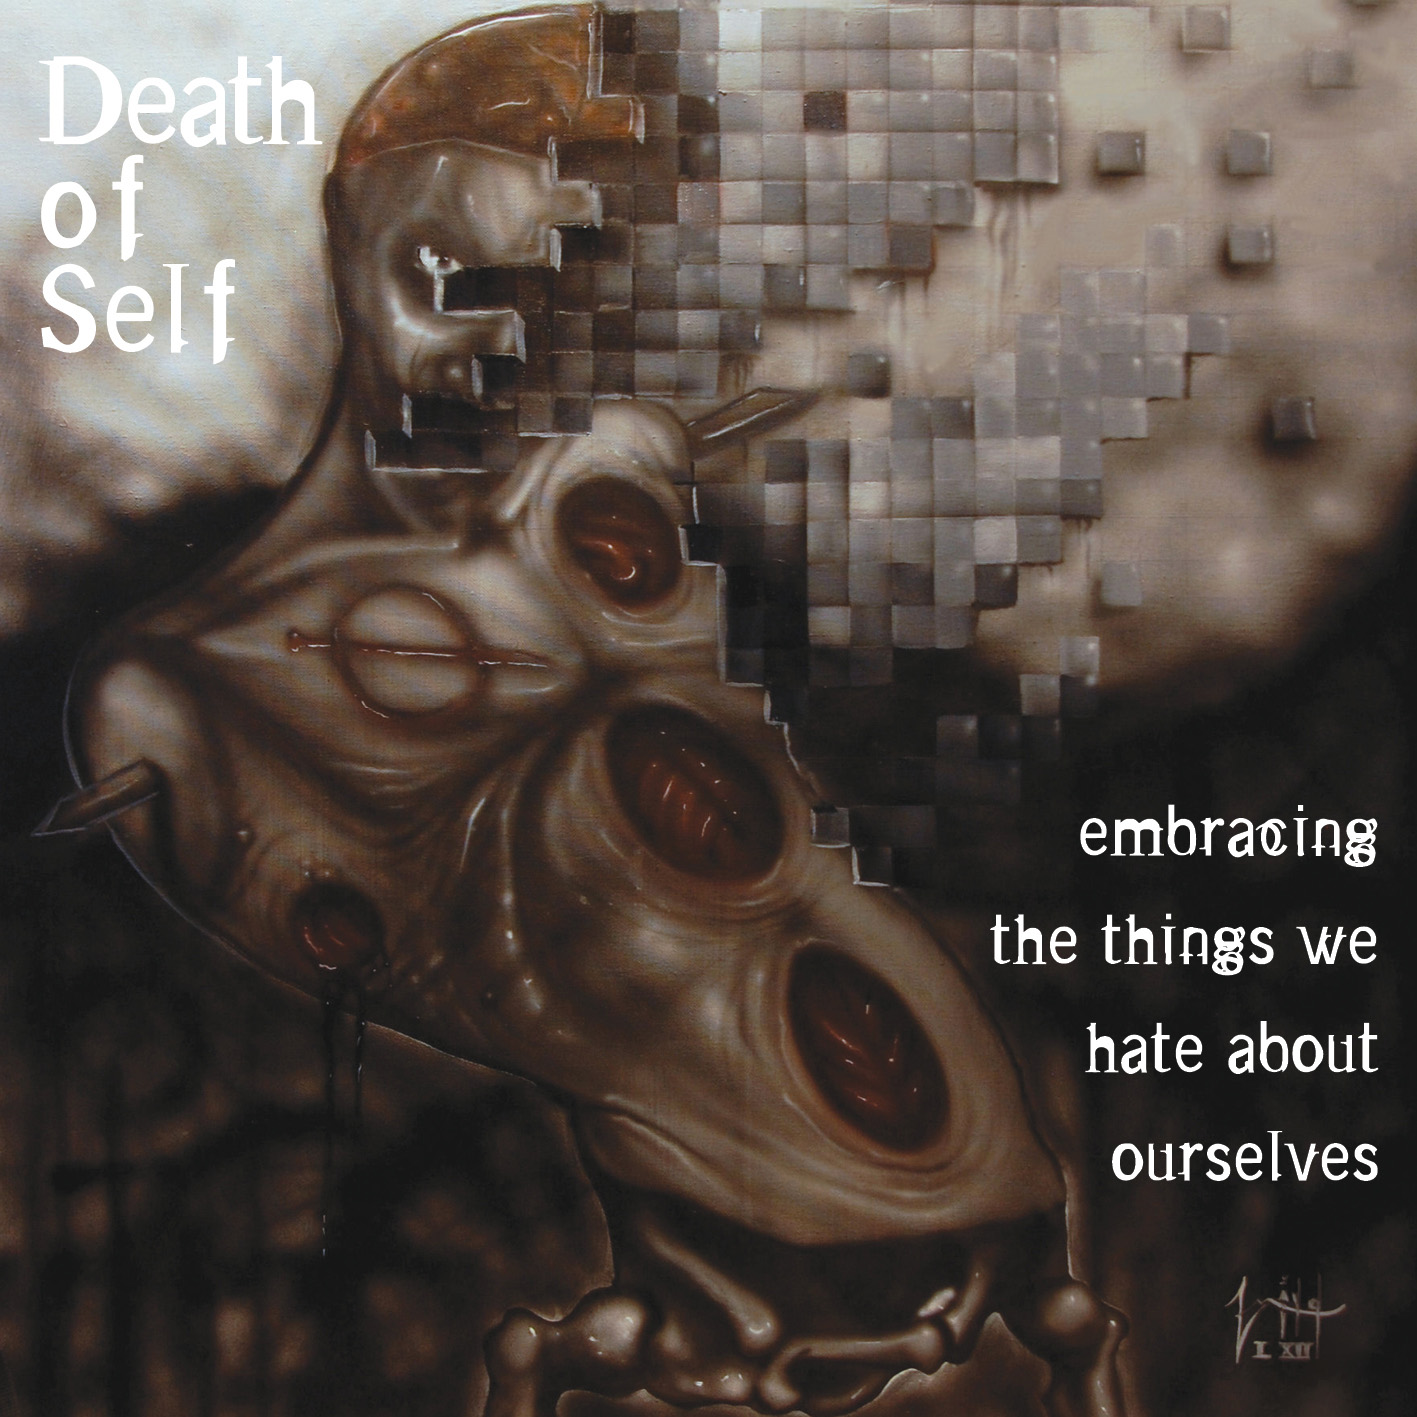 death of self - embracing the things we hate about ourselves